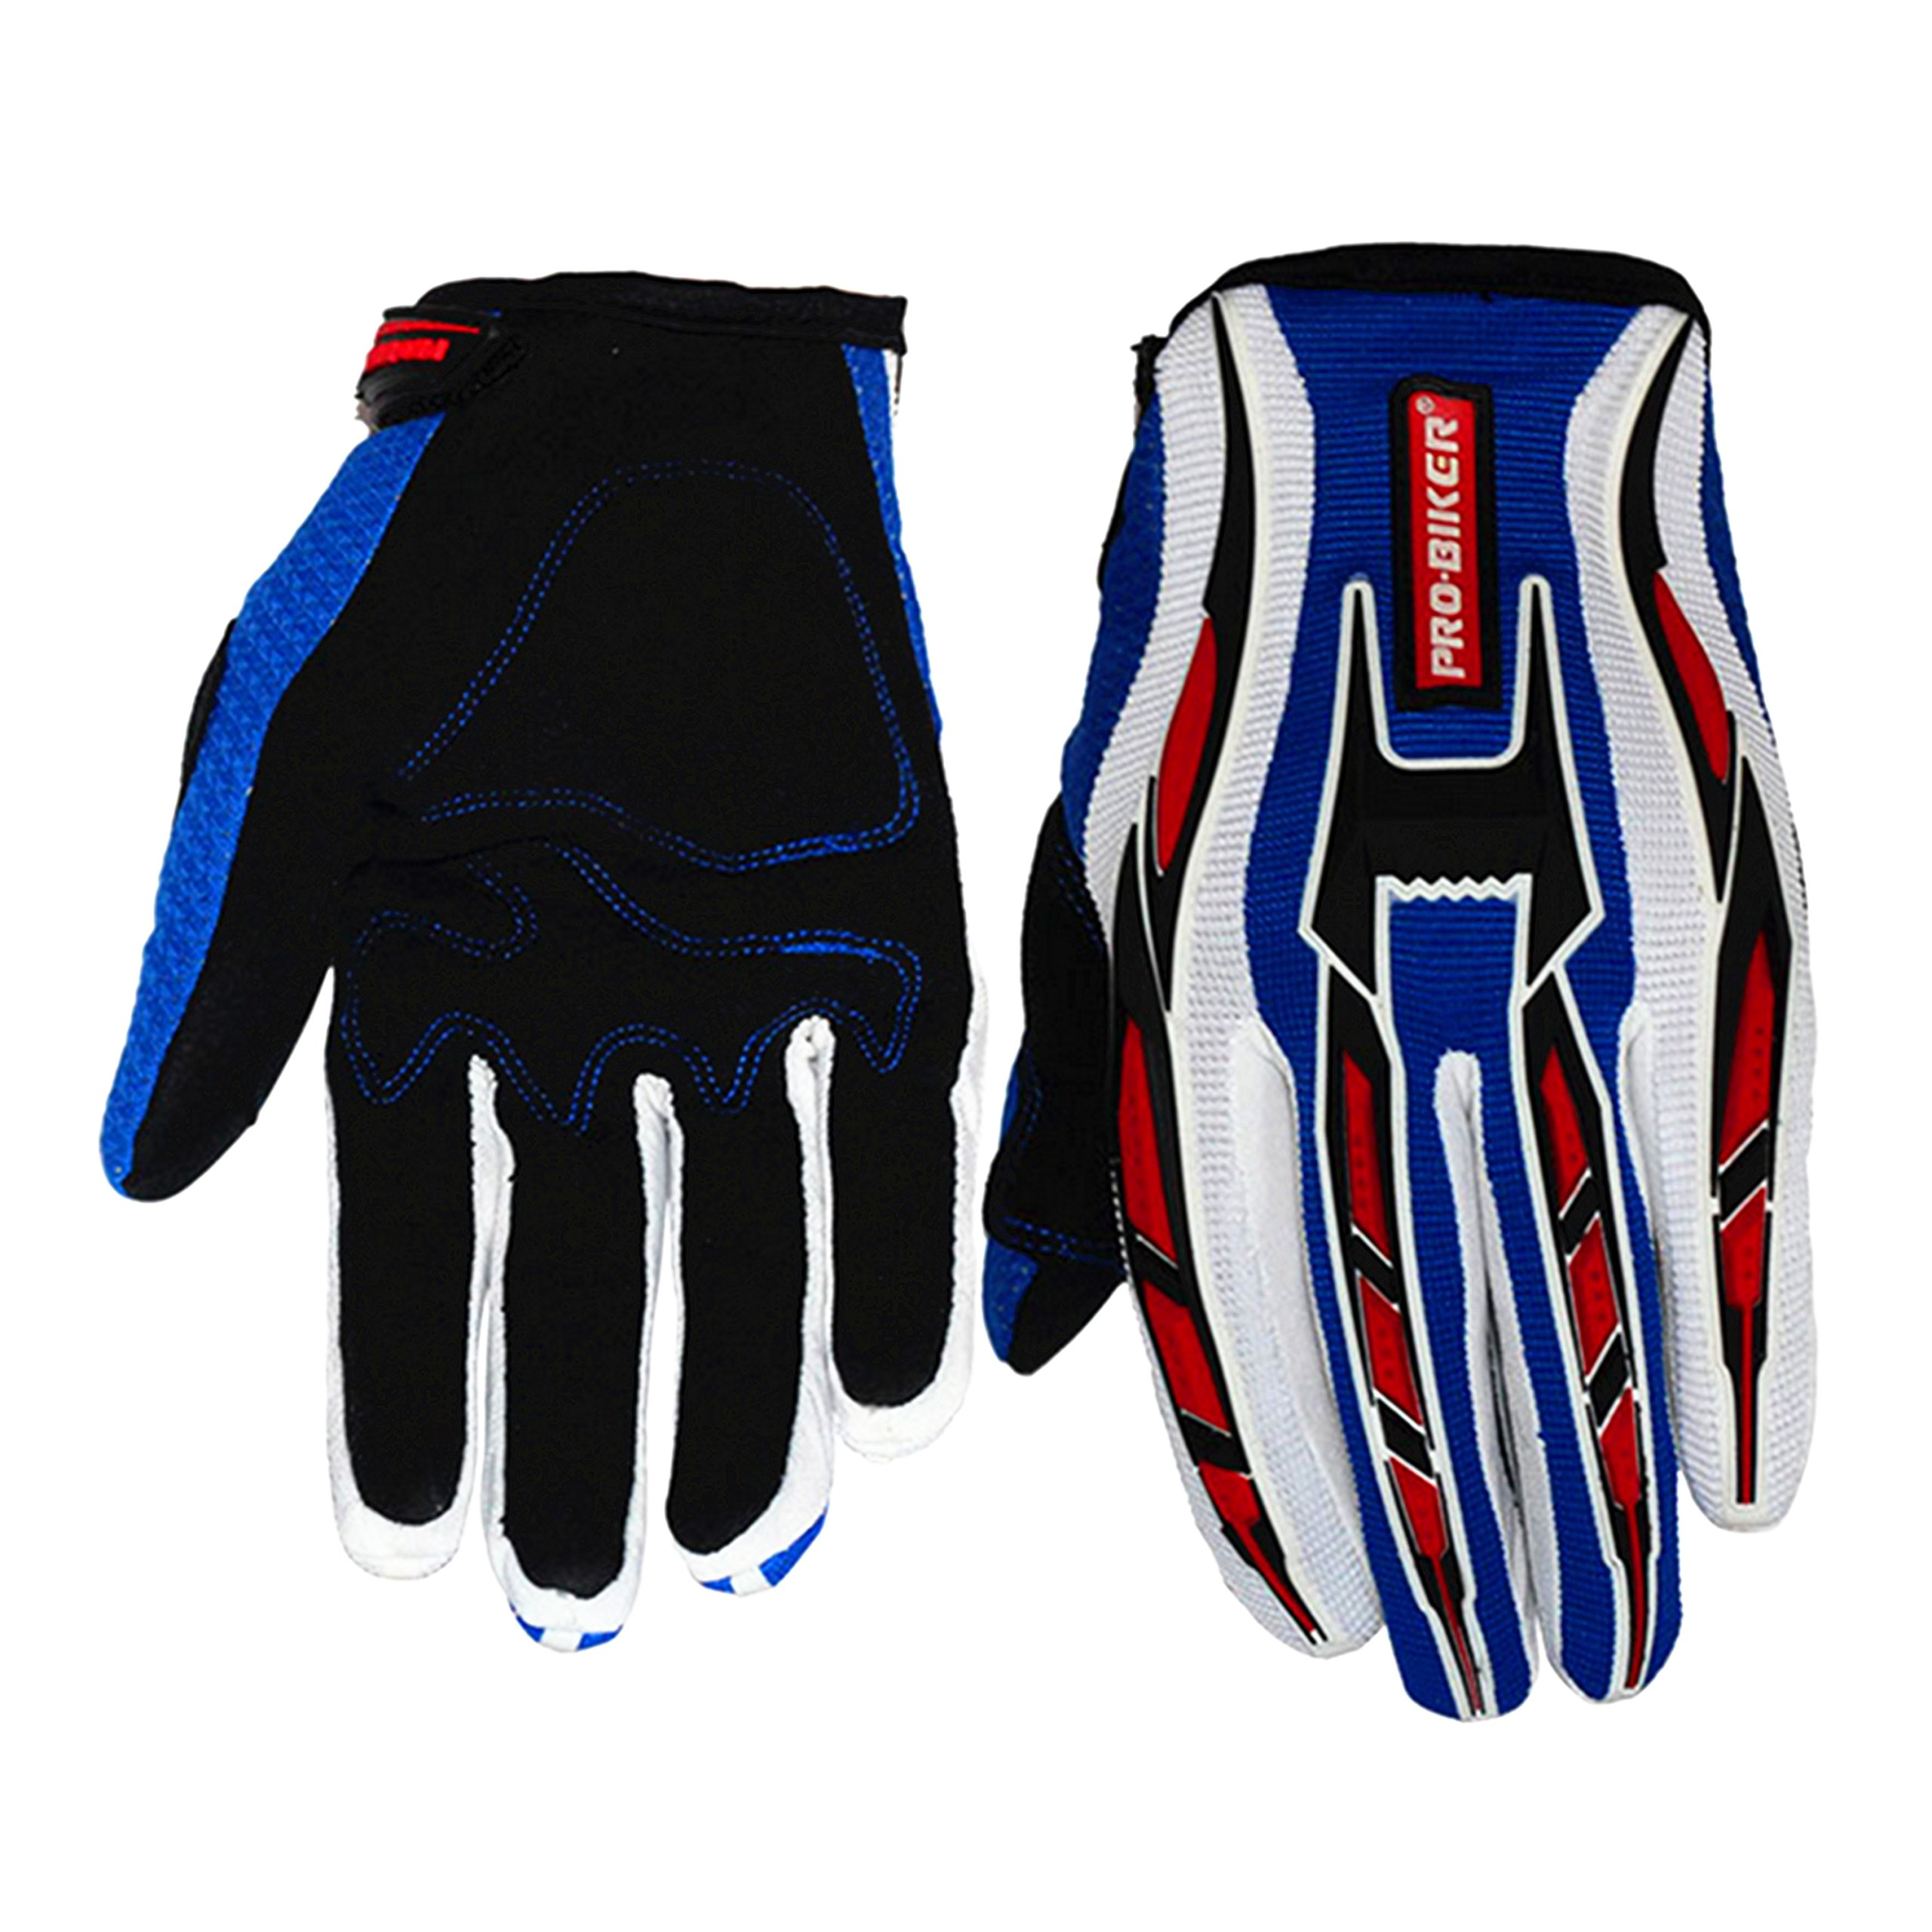 Jackey Awesome Three Colors Optional Pro-Biker Bicycle Motorcycle Motorbike Powersports Racing Gloves (XL, Suede Gloves,Blue)